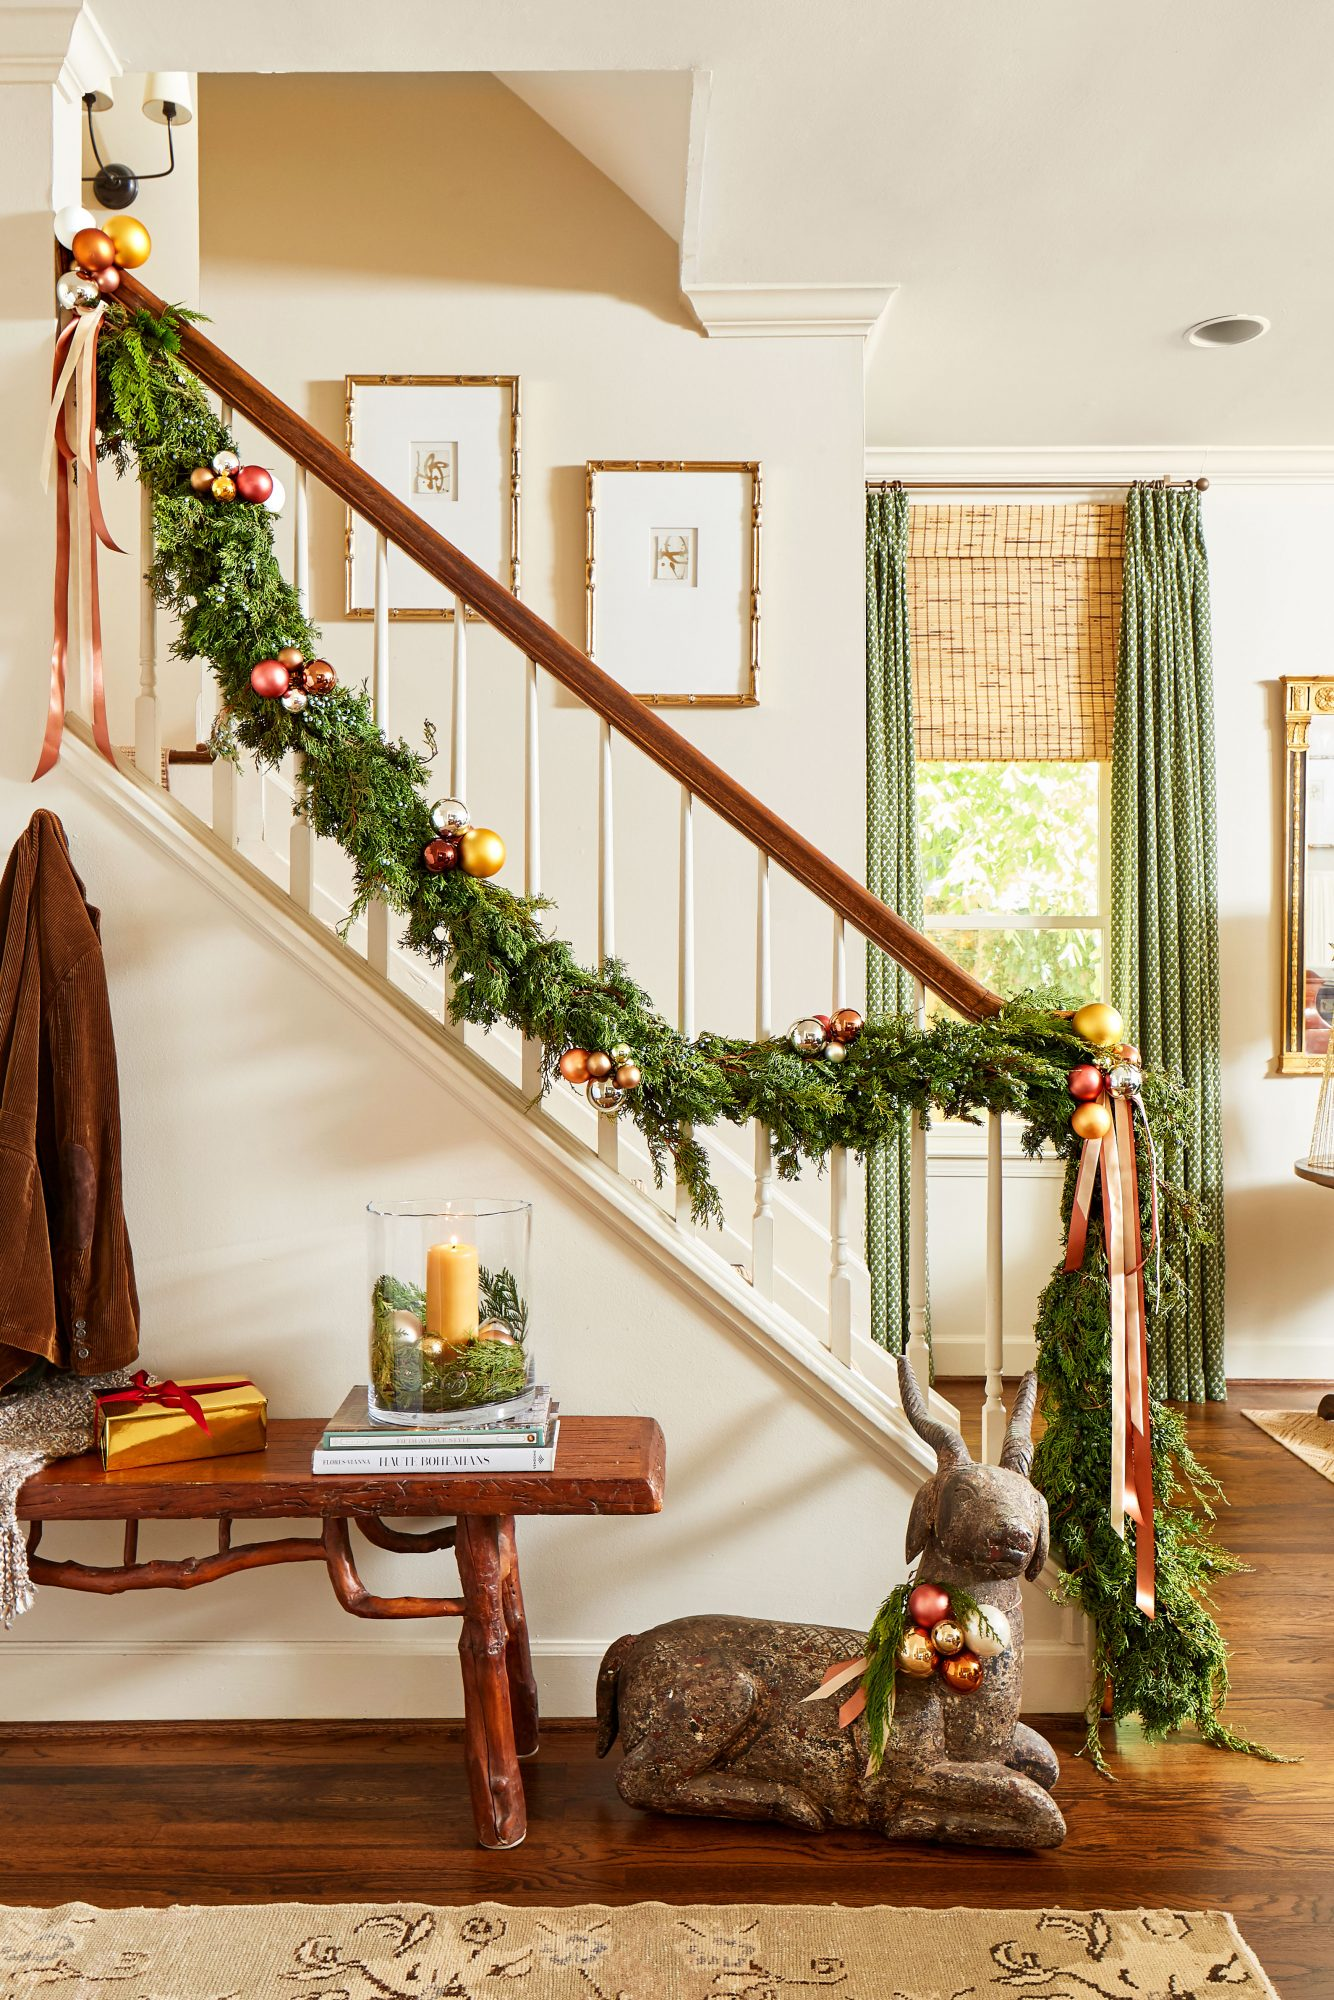 Banister with Juniper Garland